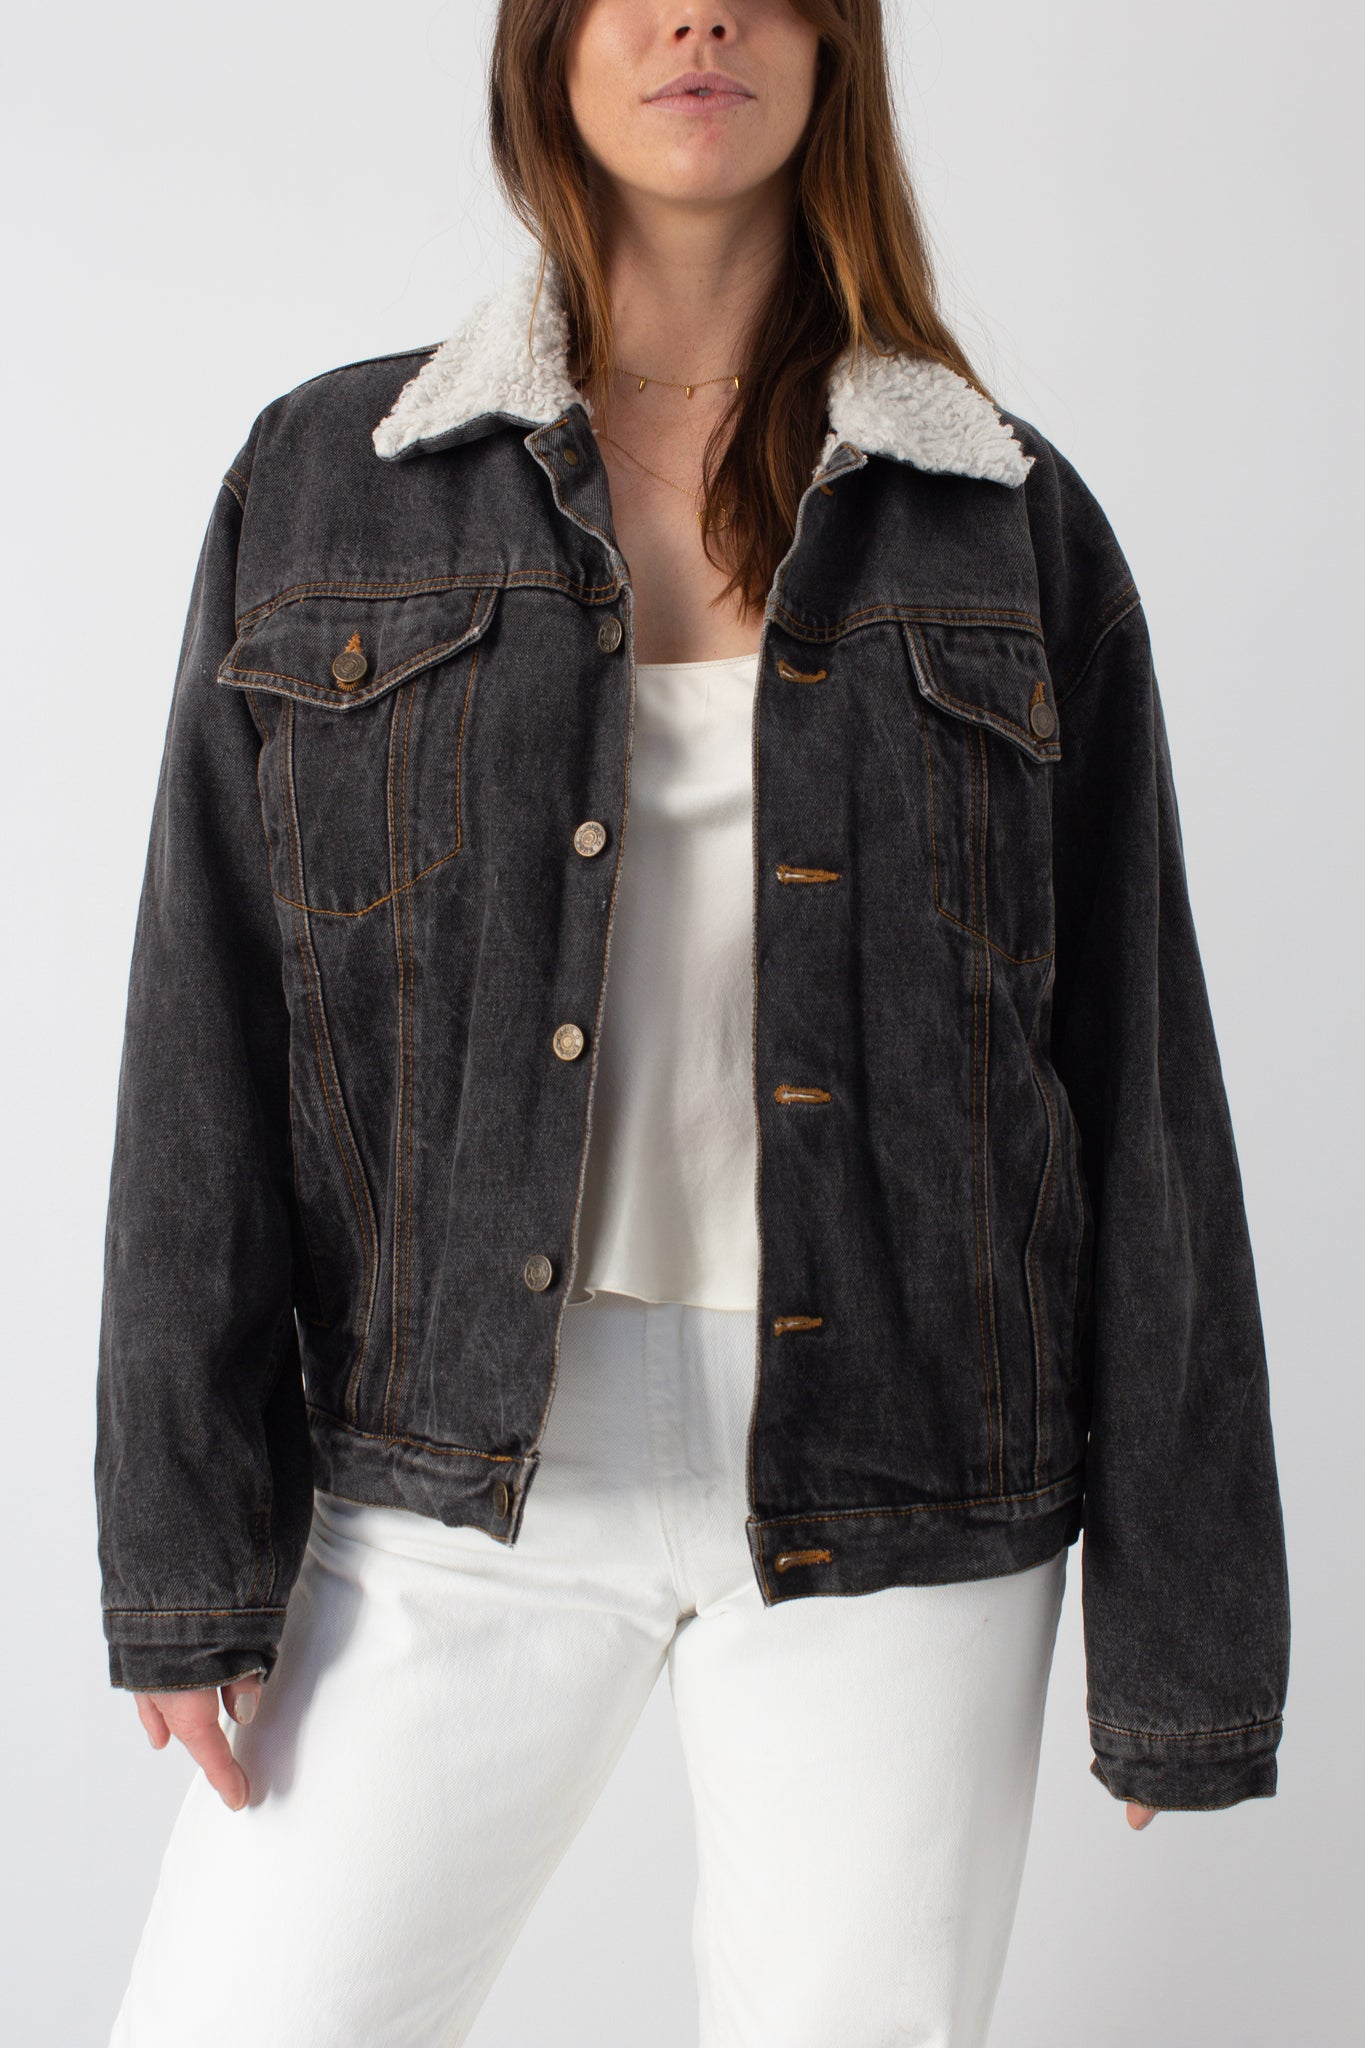 Black Denim Sherpa Jacket - Free Size